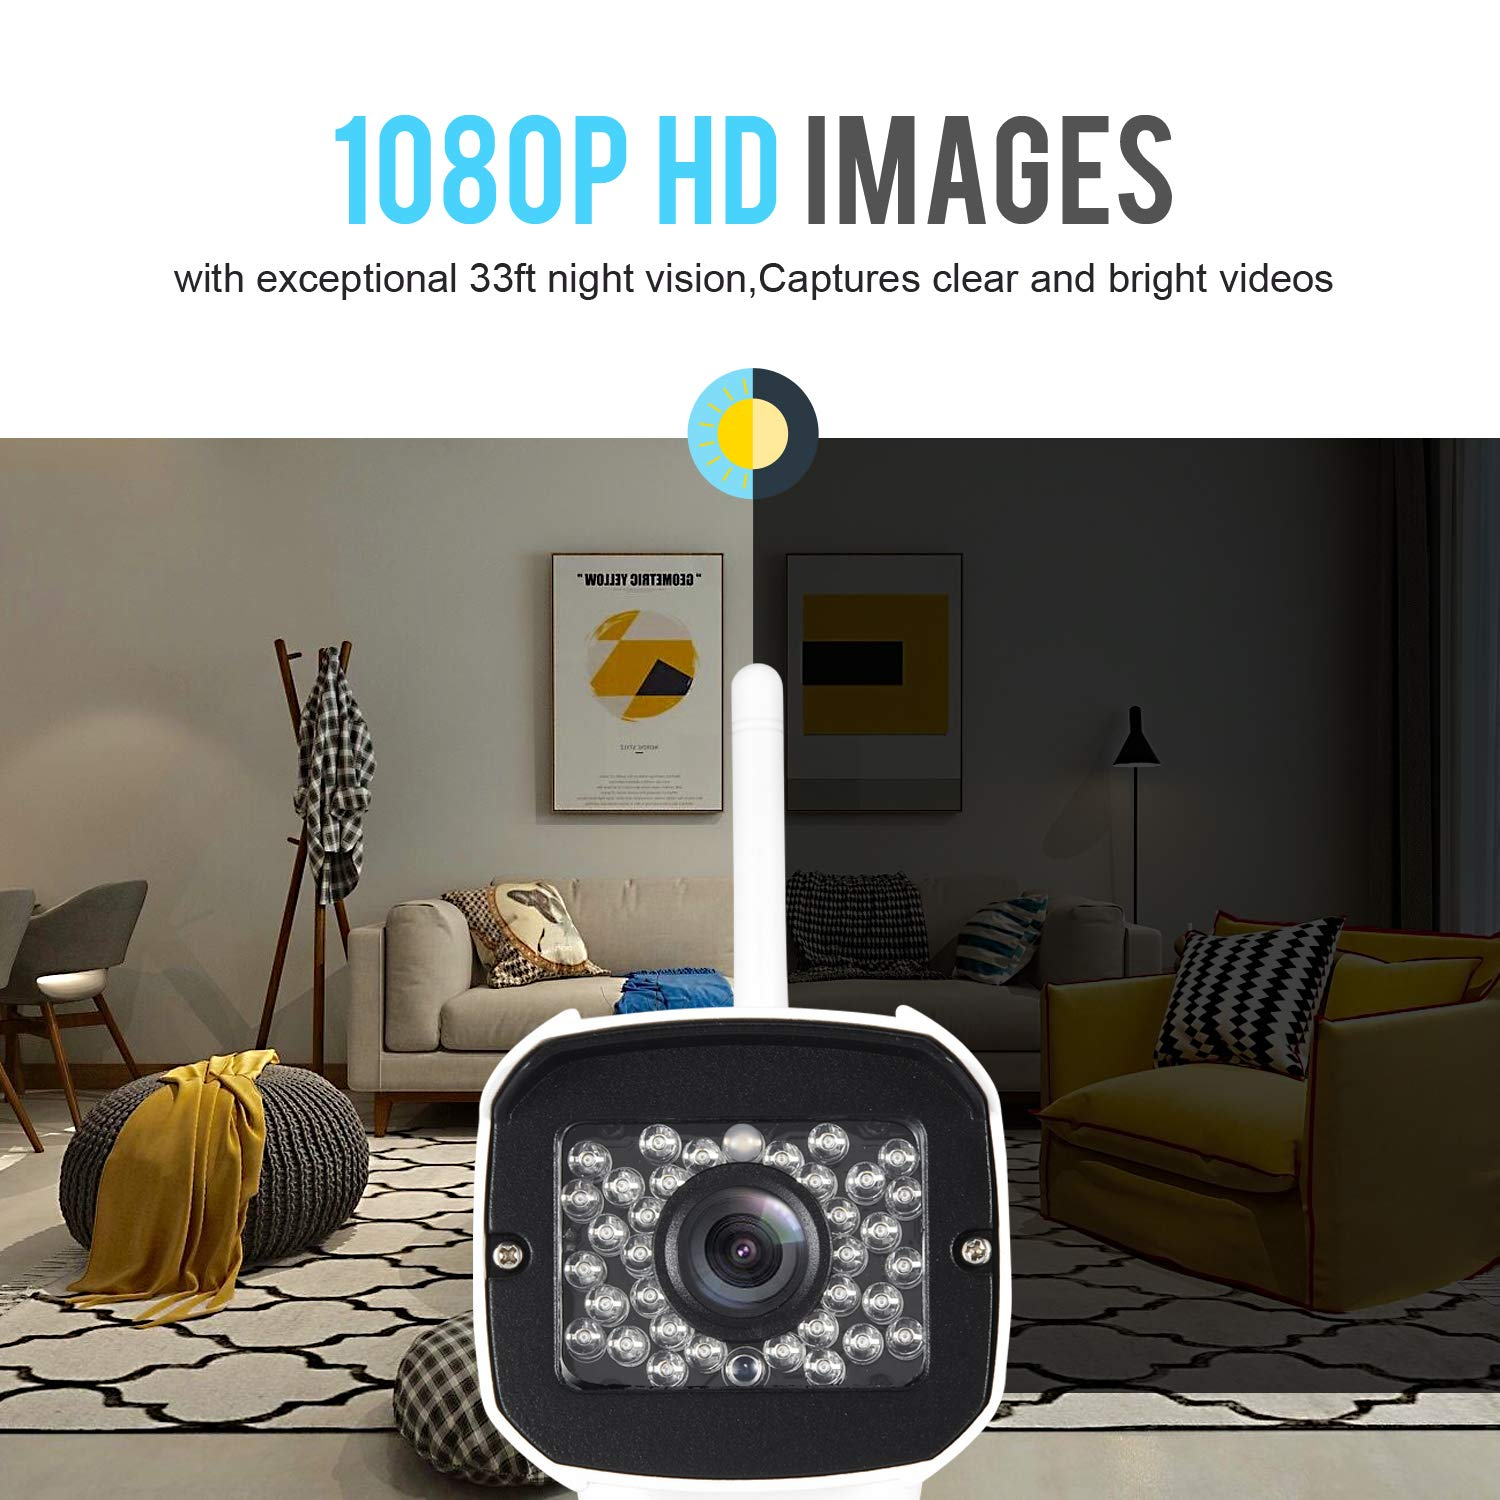 Outdoor WiFi Security Camera- 1080P HD Video Surveillance System - WiFi, Waterproof, IP Night Vision Outdoor Camera with 2-Way Audio and iOS, Android Compatibility (02) by AMICCOM (Image #3)